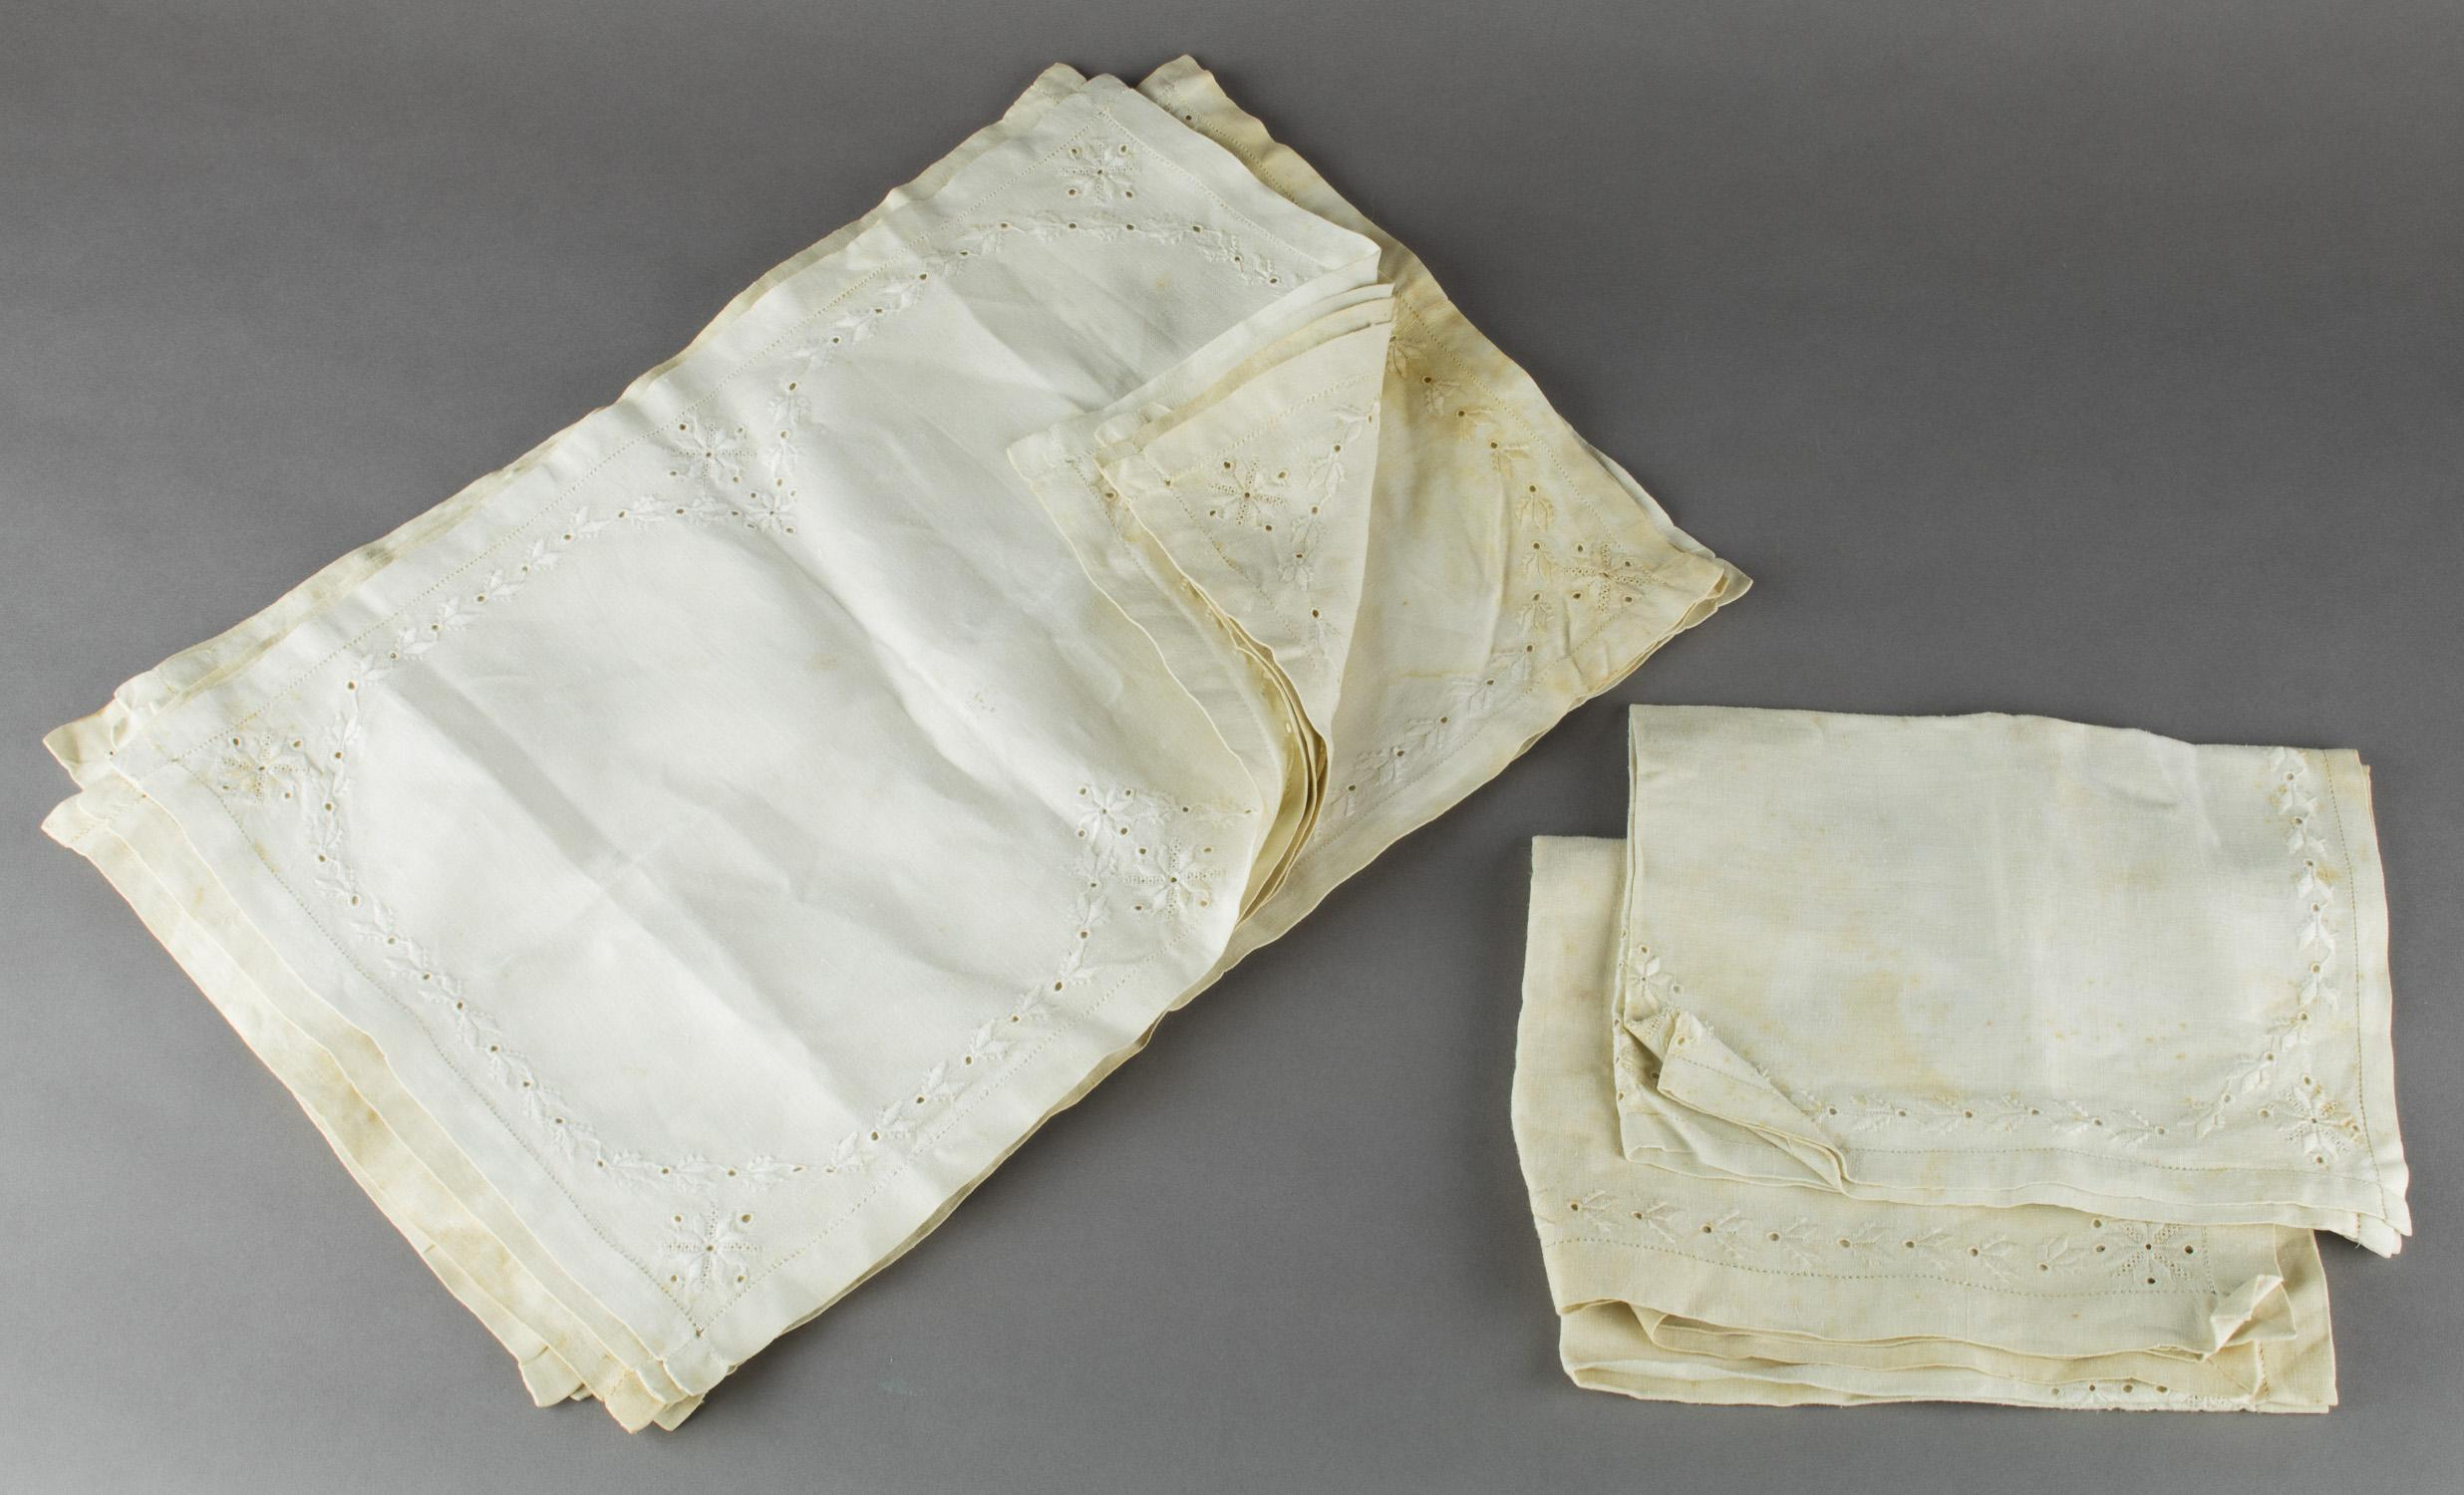 TABLE LINEN ATTRIBUTED TO HITLER'S BERGHOF